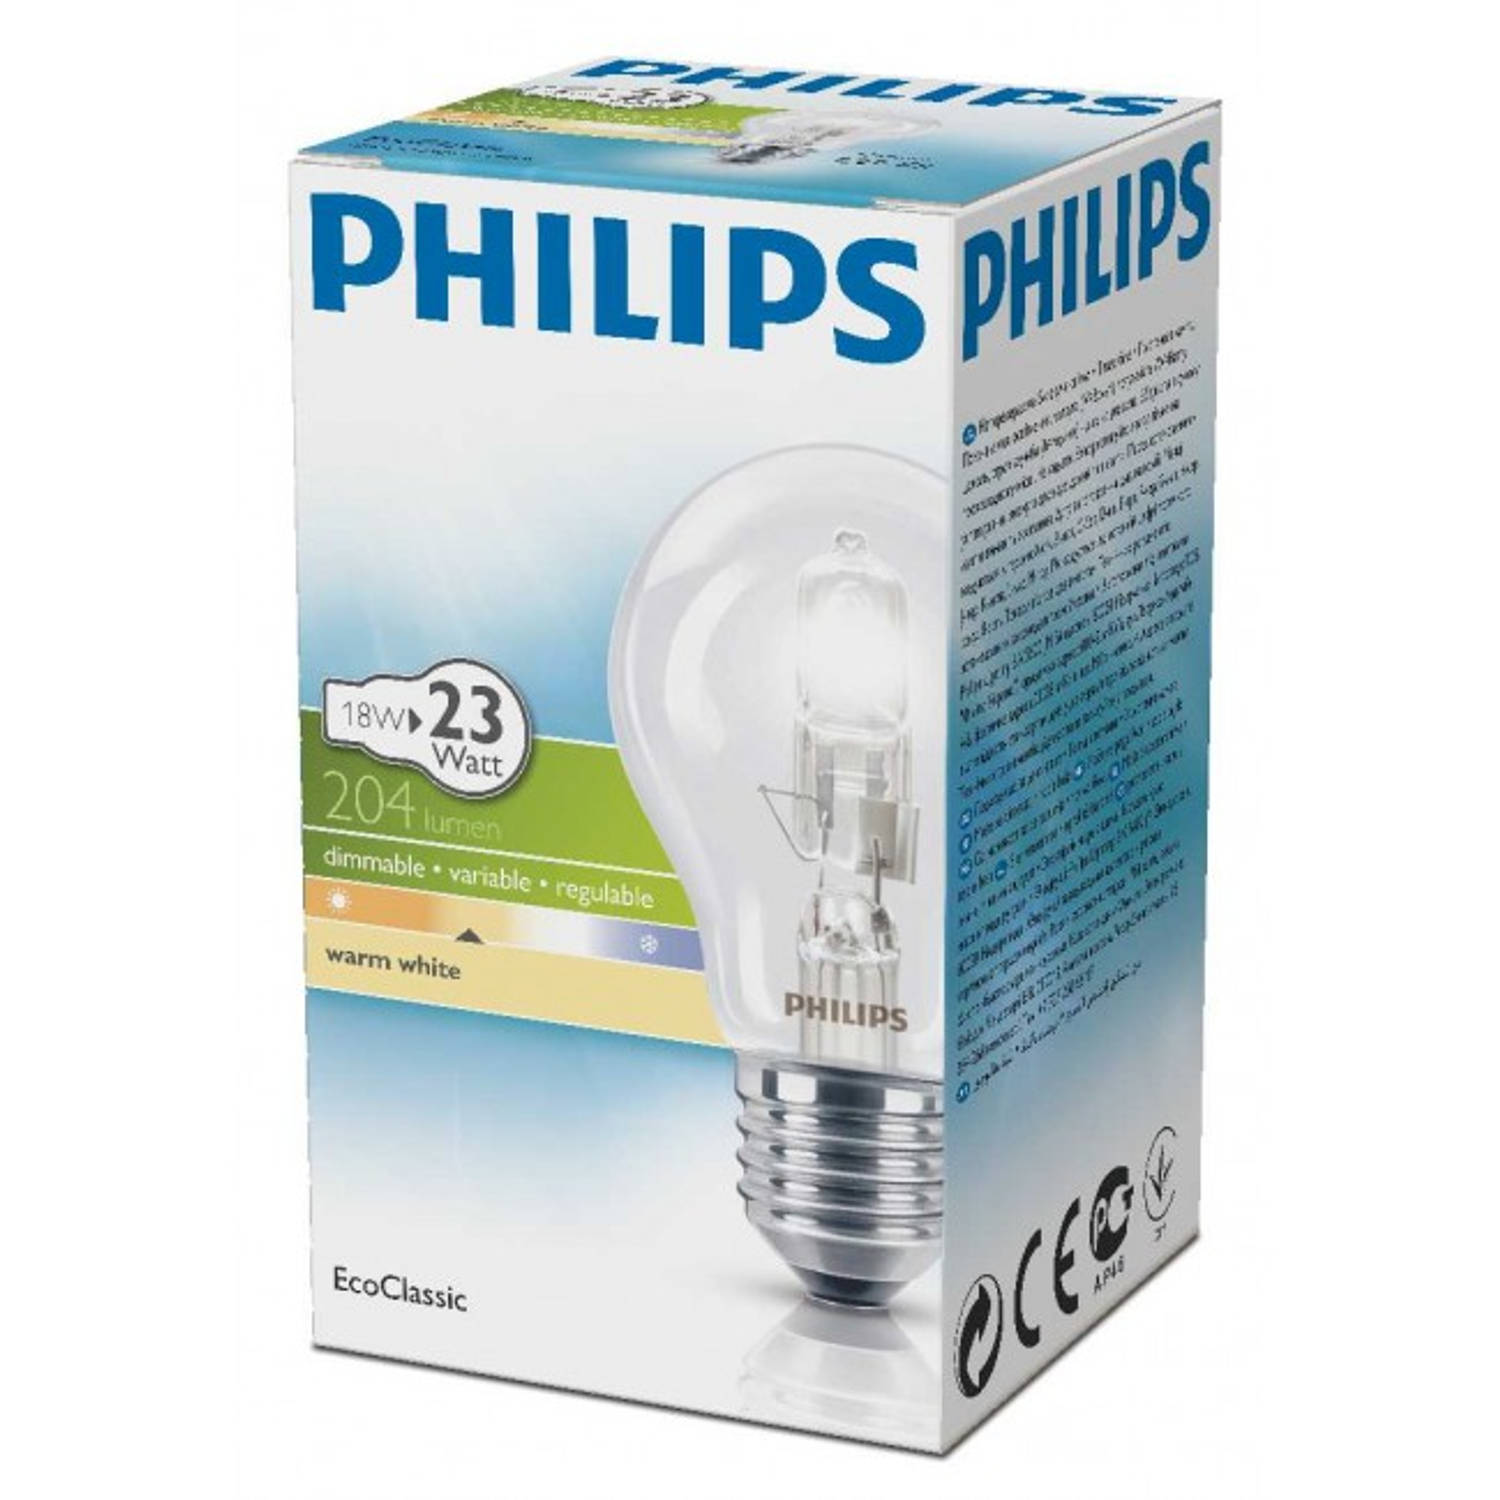 Philips EcoClassic halogeenlamp 230 V 18 W E27 warm wit